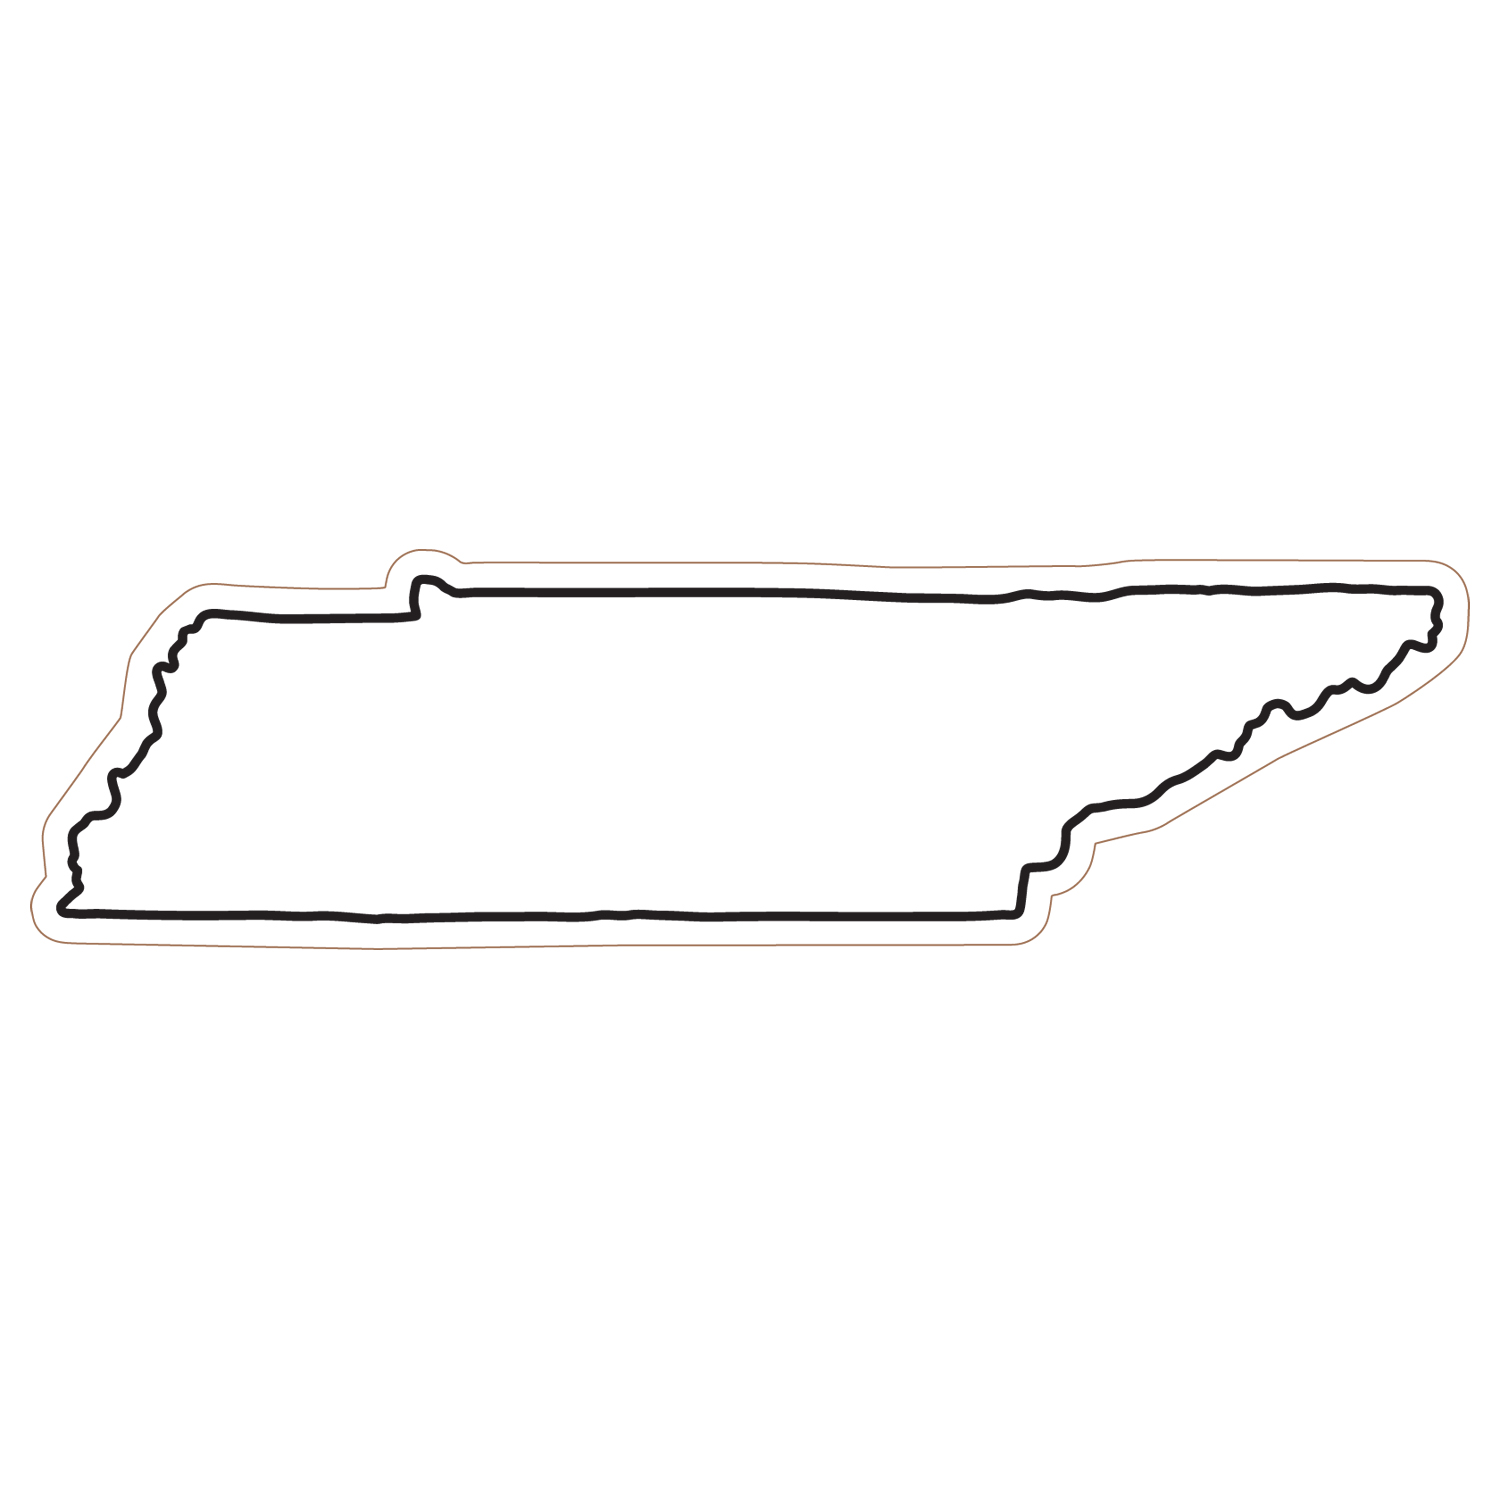 Free Tennessee Cliparts, Download Free Clip Art, Free Clip.